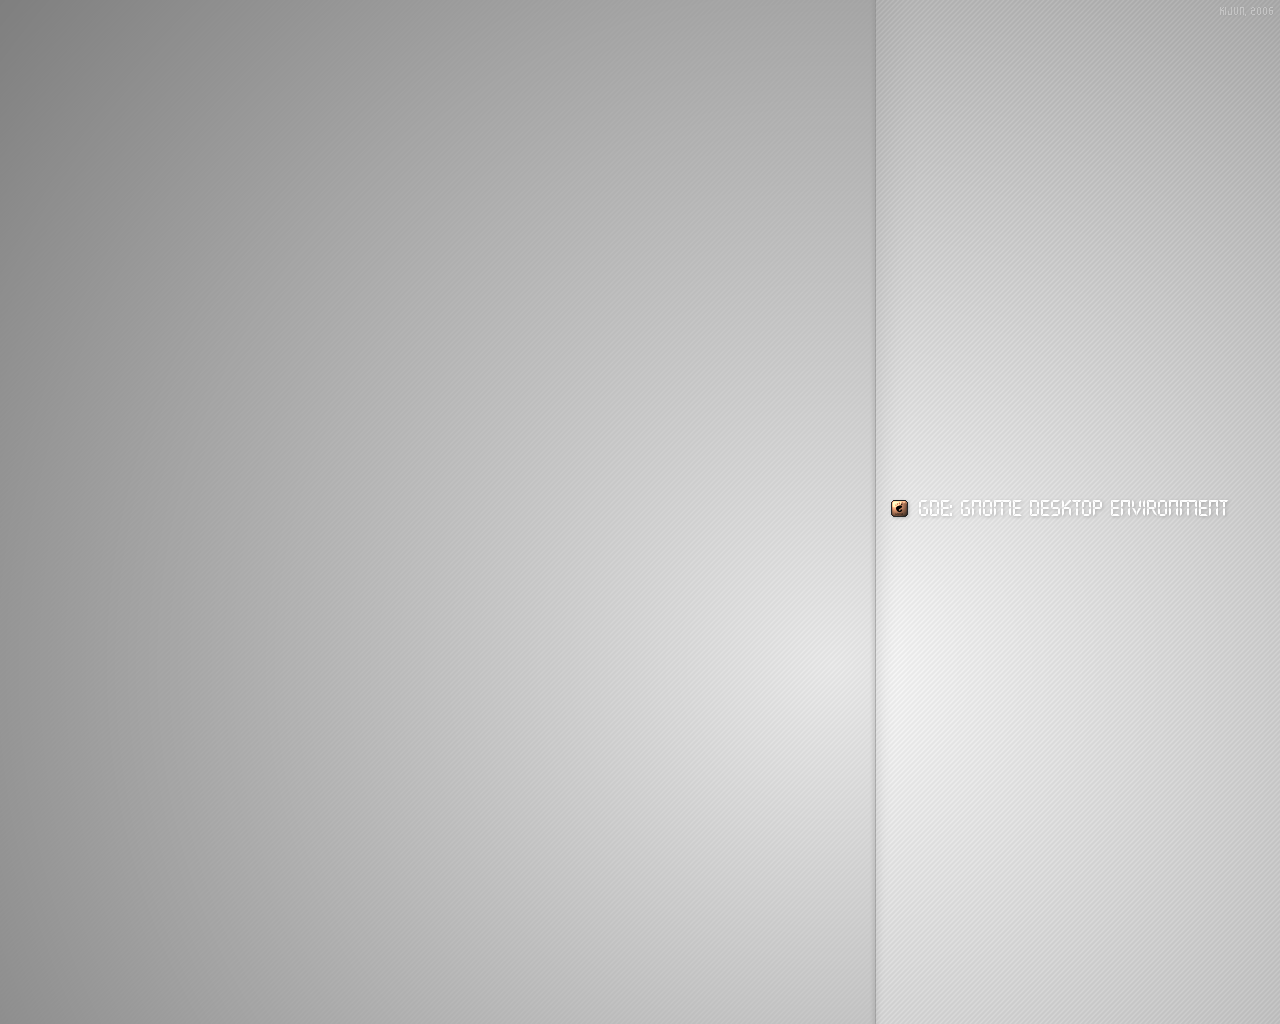 Mirror texture png. List download file from